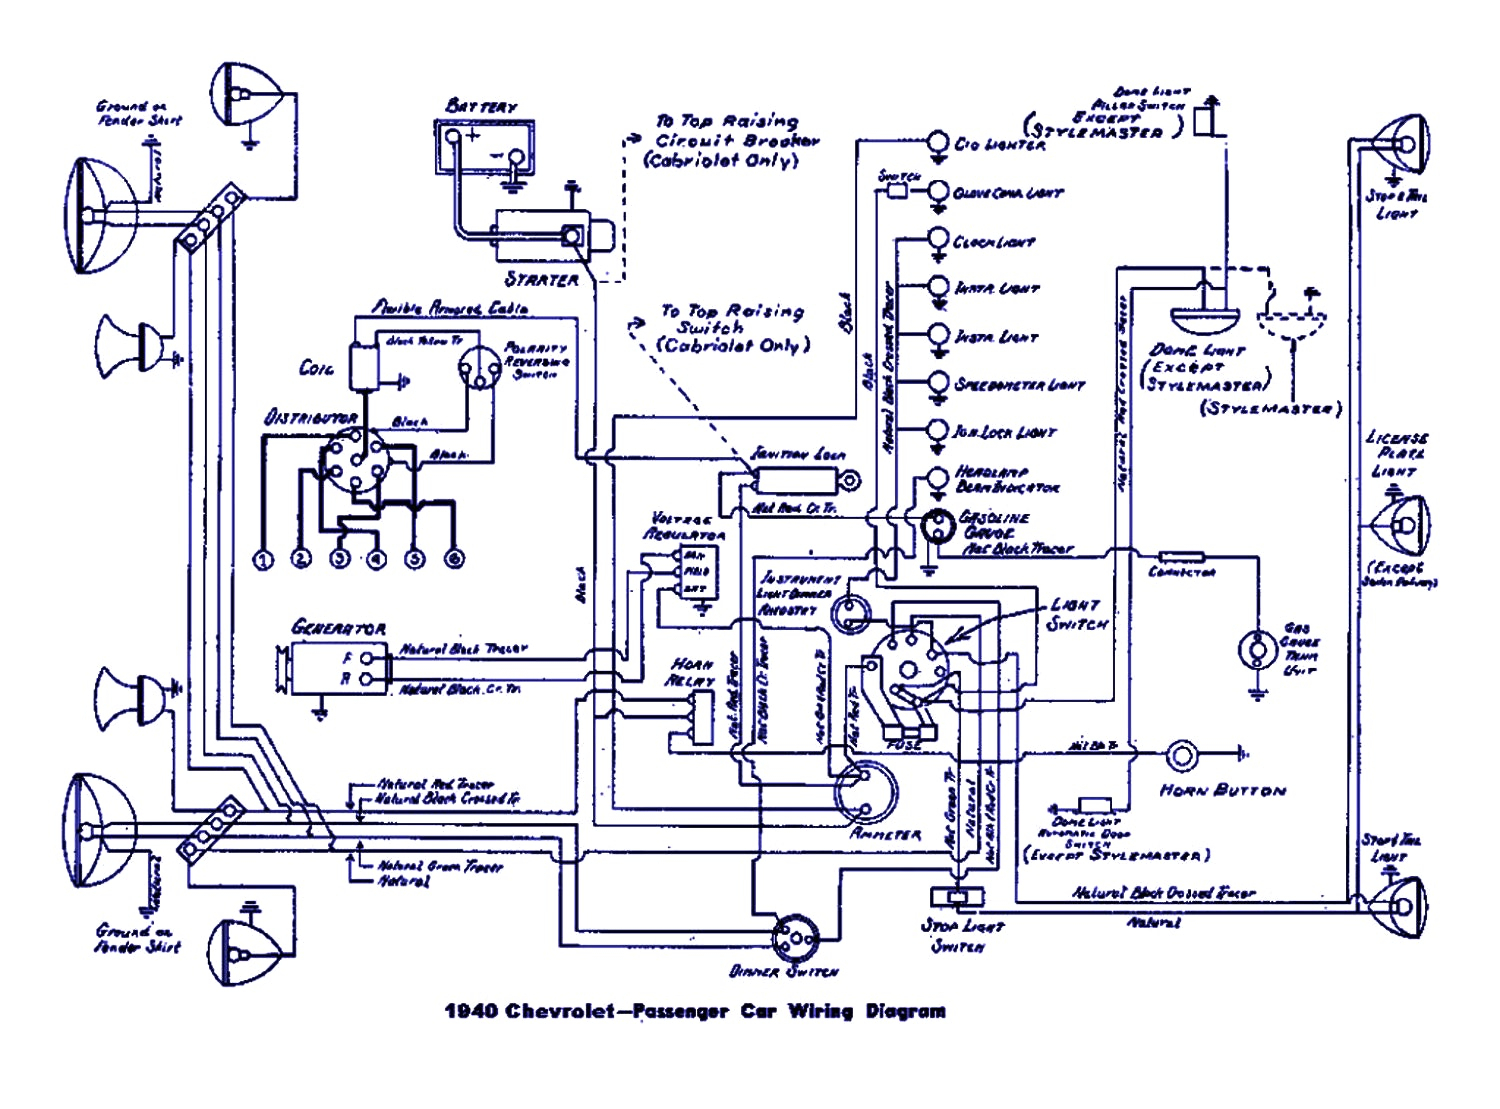 48 volt charger wiring schematic wiring diagram article  48 volt charger wiring schematic #2